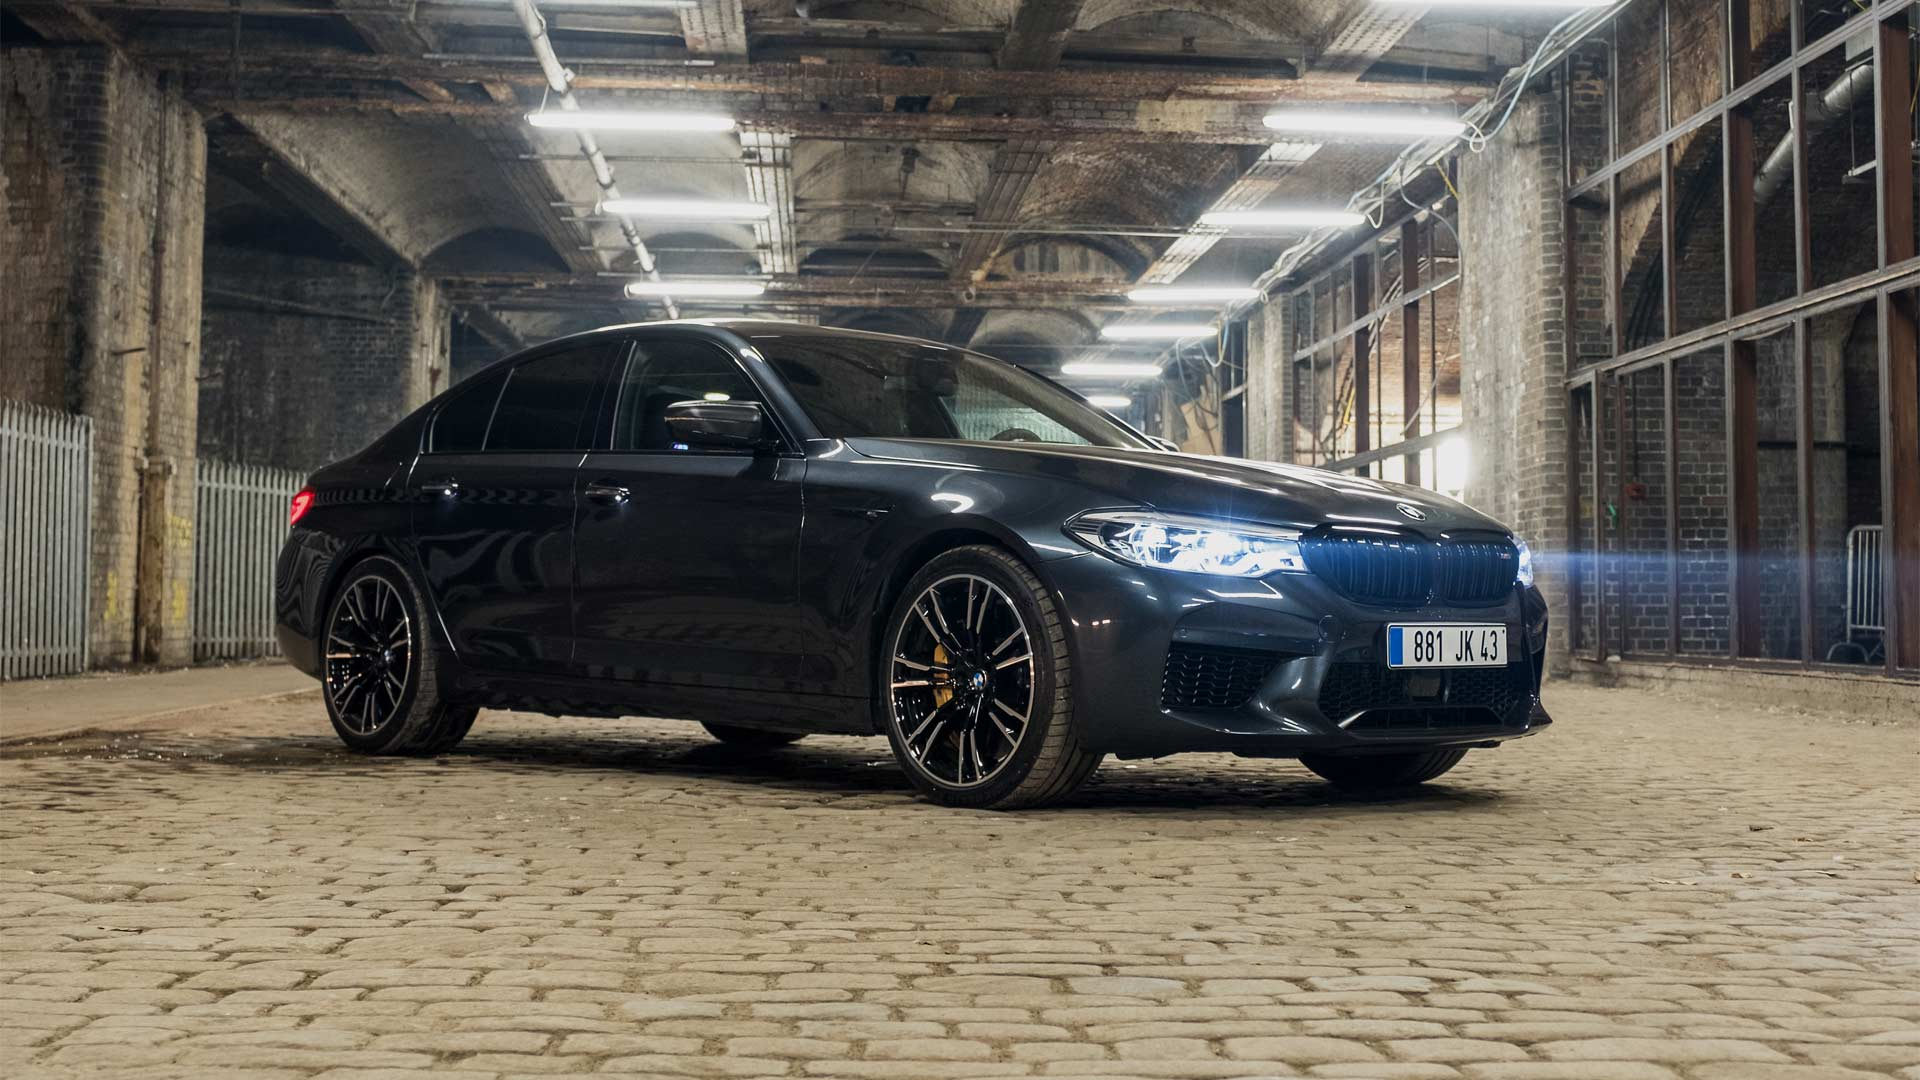 2018-BMW-M5-Mission-Impossible-Fallout